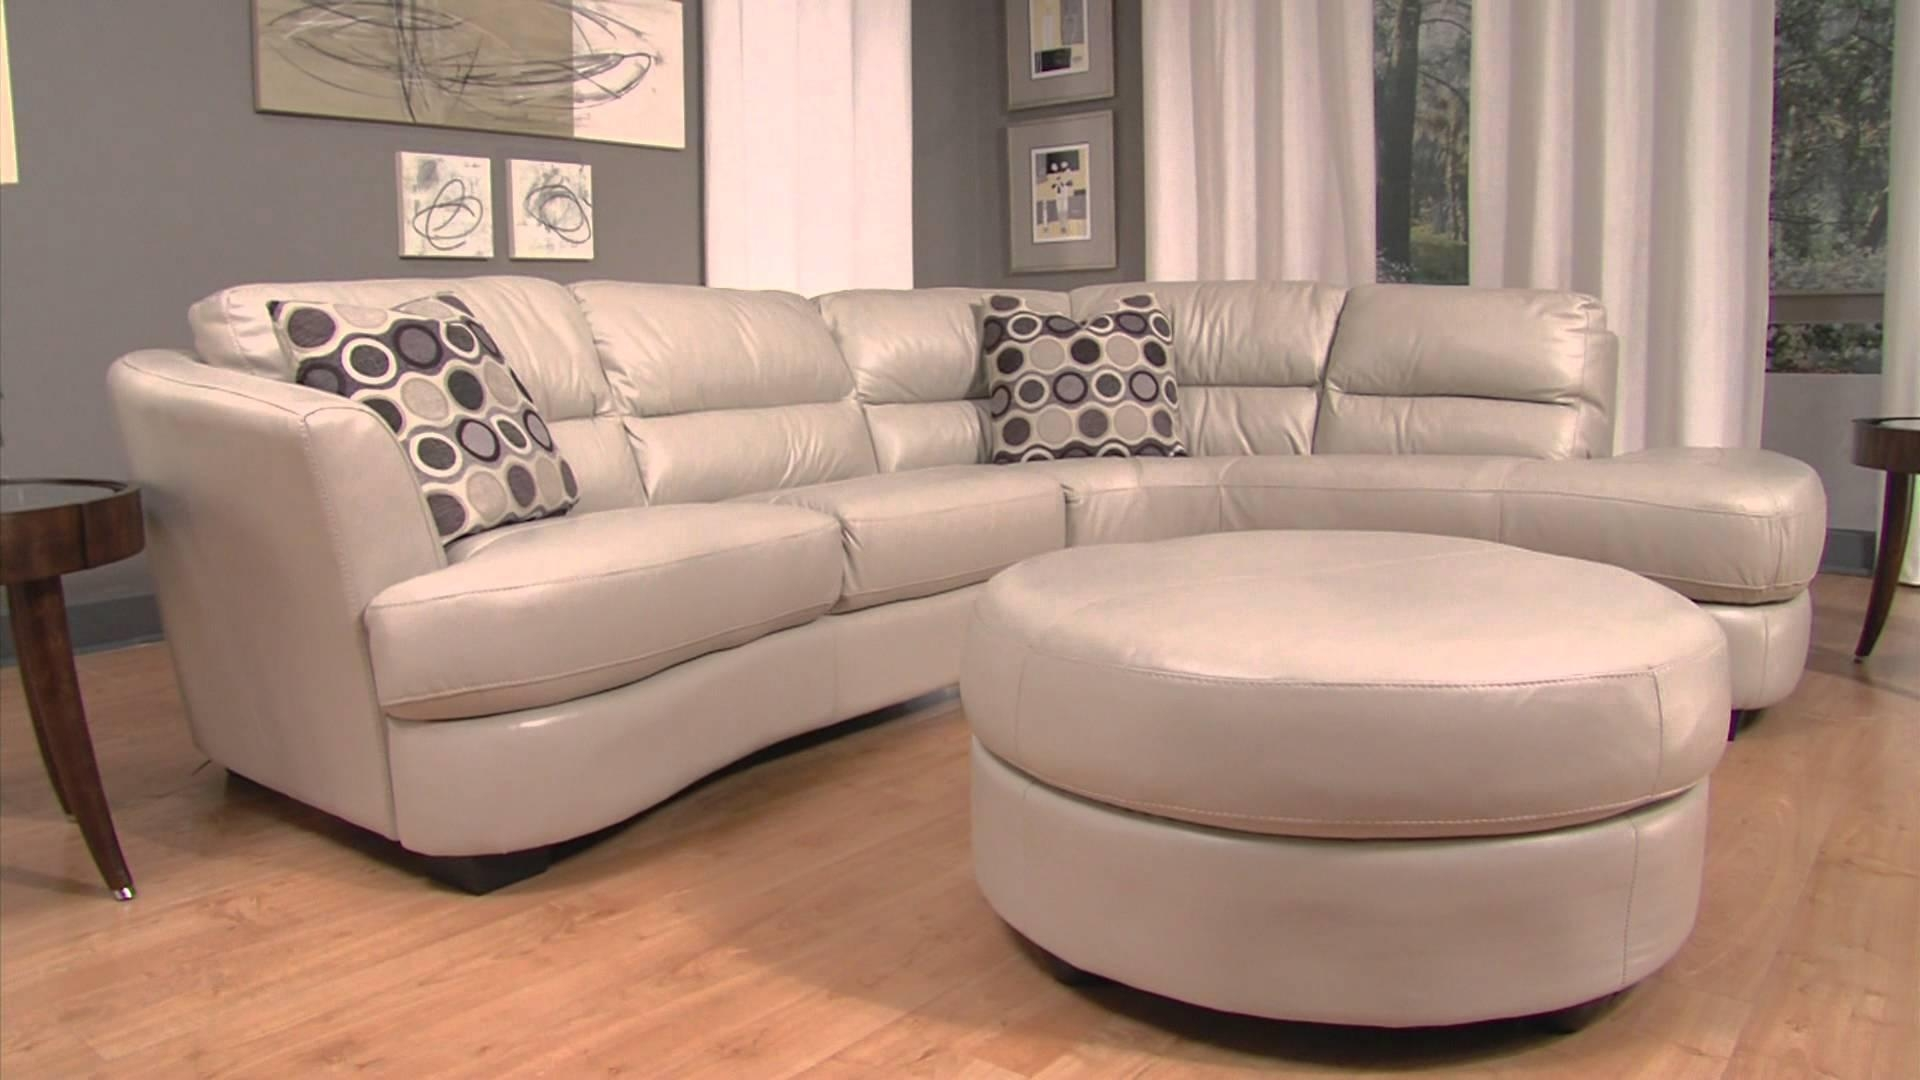 Furniture: Inspiring Living Furniture Ideas With Costco Leather In Costco Leather Sectional Sofas (Image 13 of 20)